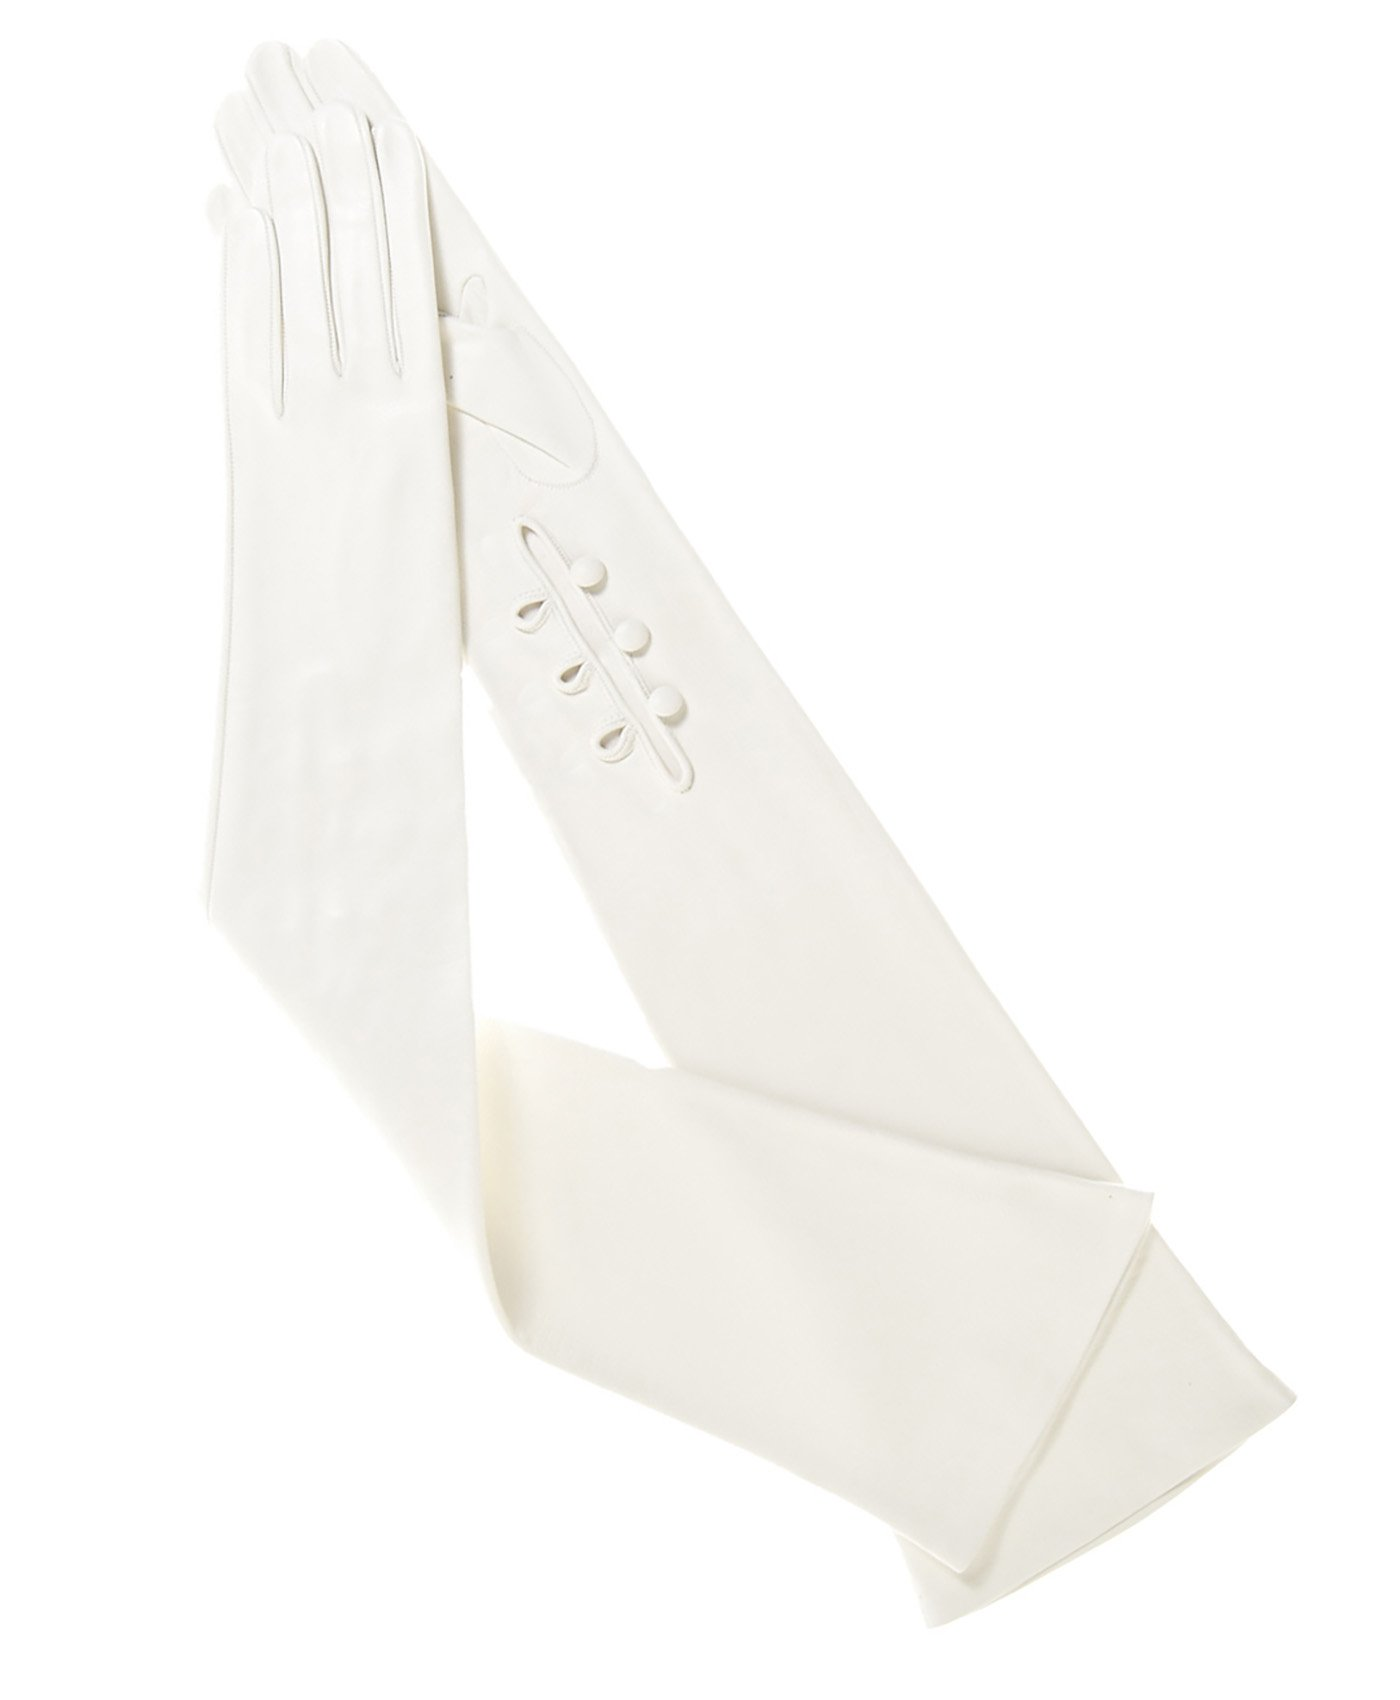 Fratelli Orsini Women's Italian Silk Lined 12-Button Length Bridal Gloves Size 7 Color White by Fratelli Orsini